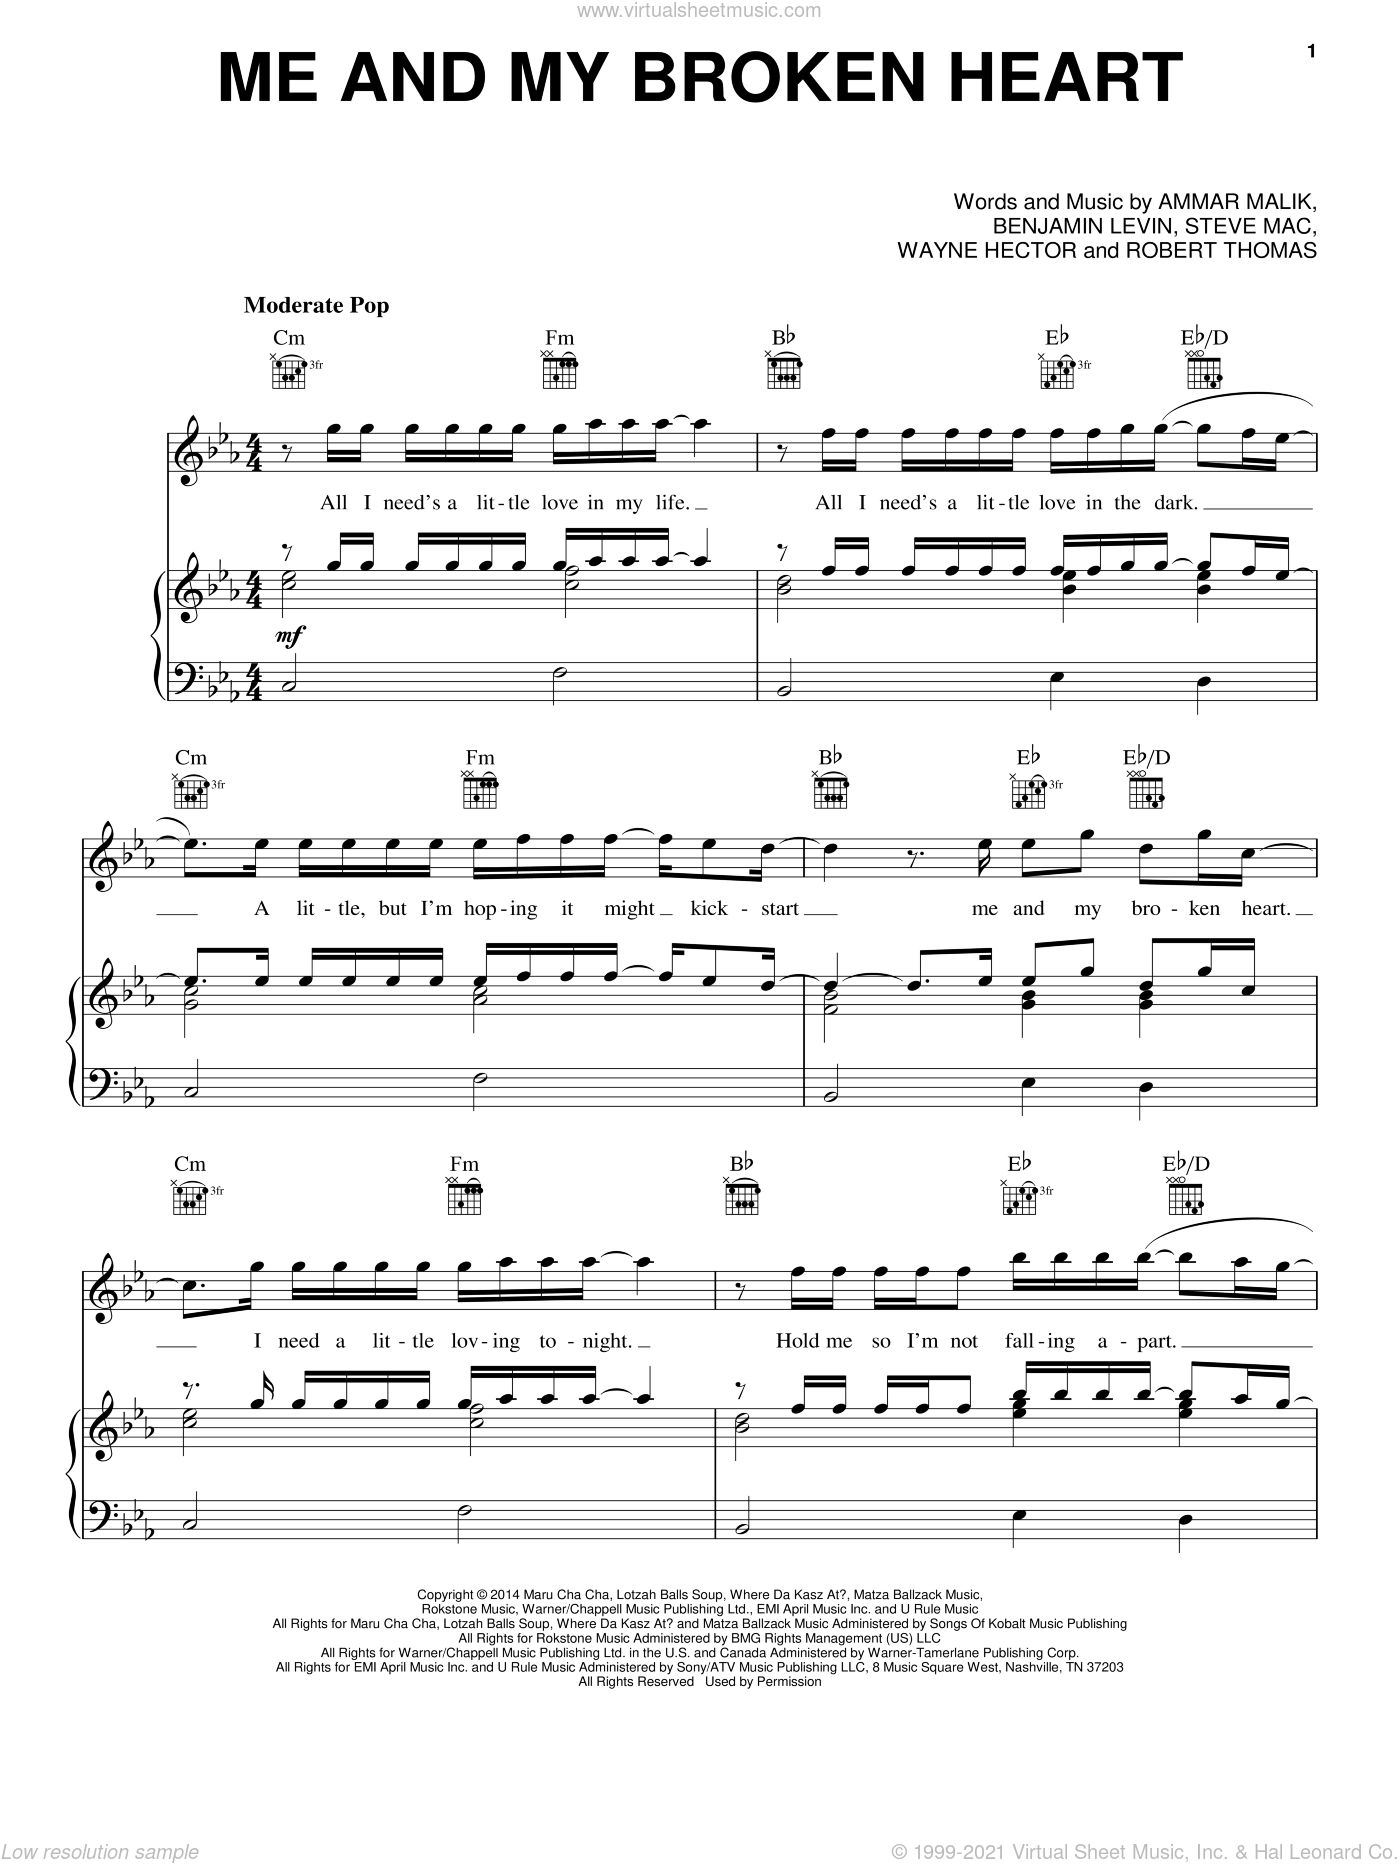 Me And My Broken Heart sheet music for voice, piano or guitar by Rixton, Ammar Malik, Benjamin Levin, Rob Thomas, Steve Mac and Wayne Hector, intermediate skill level